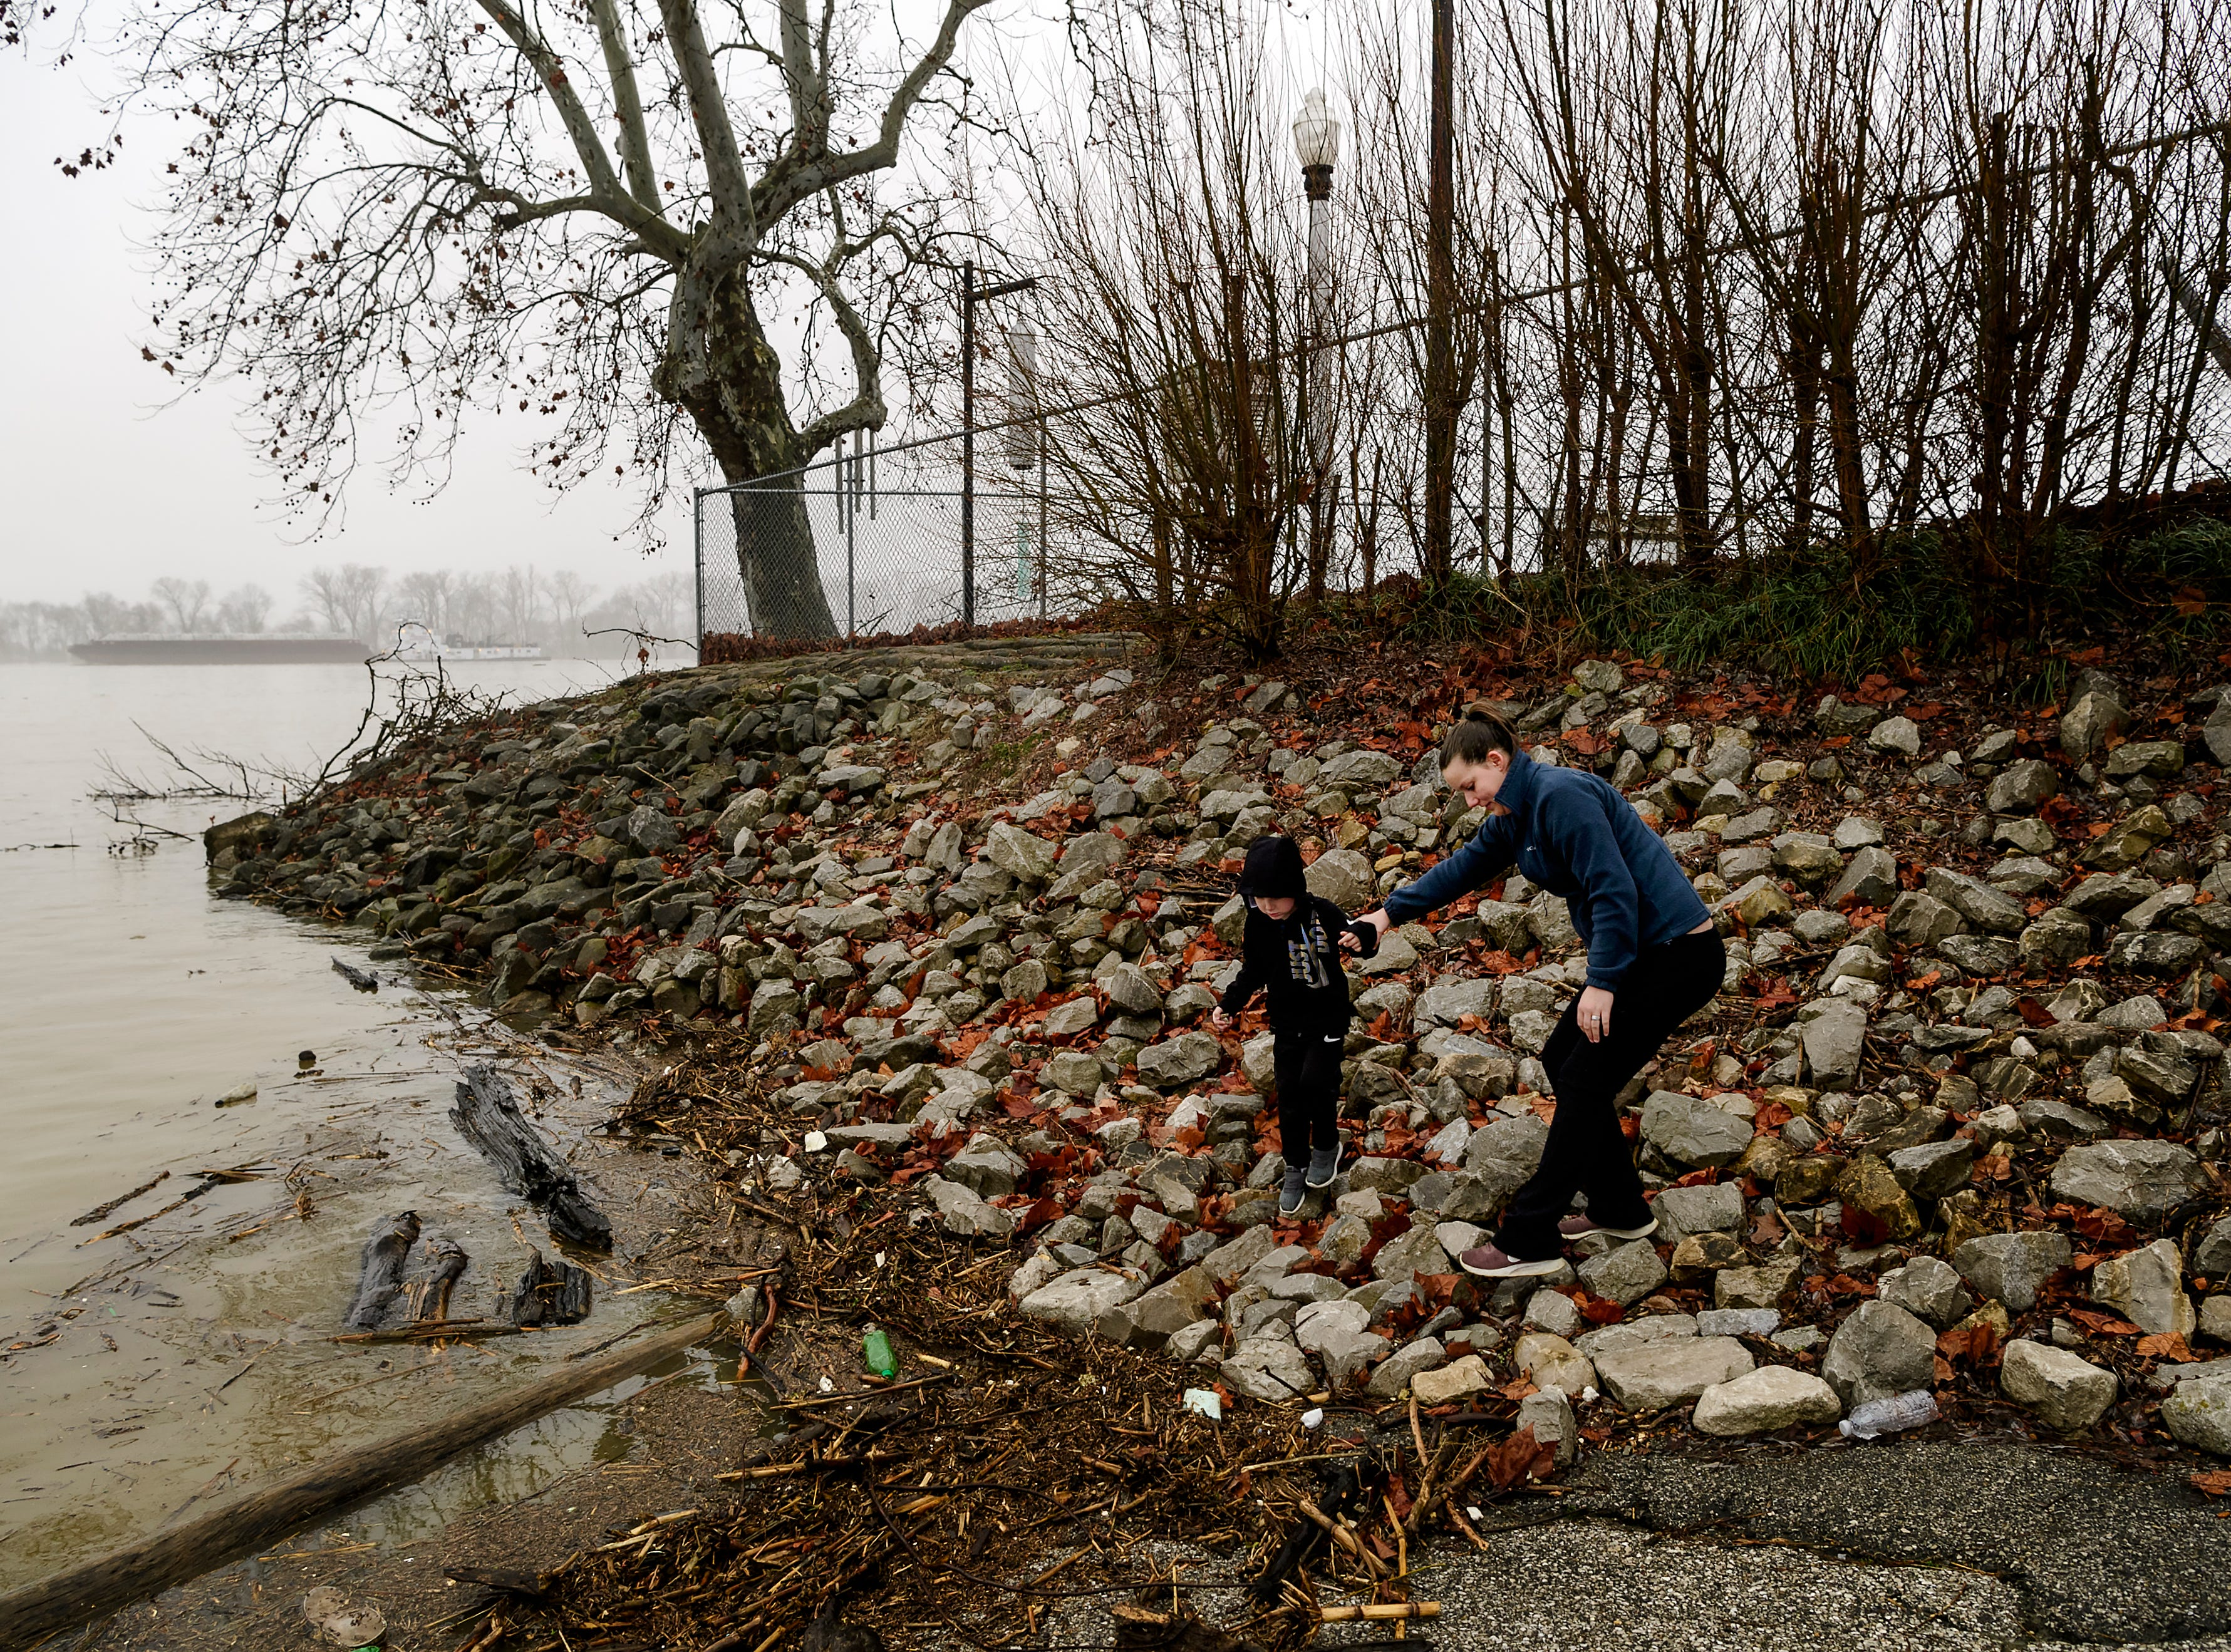 Four-year-old Camden and his mother Sherri Rye of Mt. Vernon walk along the banks of the Ohio River to check out how high the water level has risen near Riverbend Park in downtown Mt. Vernon, Ind., Wednesday, Feb. 20, 2019. According to the National Weather Service, the flood stage was measured at 46 feet in Mount Vernon at 6 a.m. Wednesday.